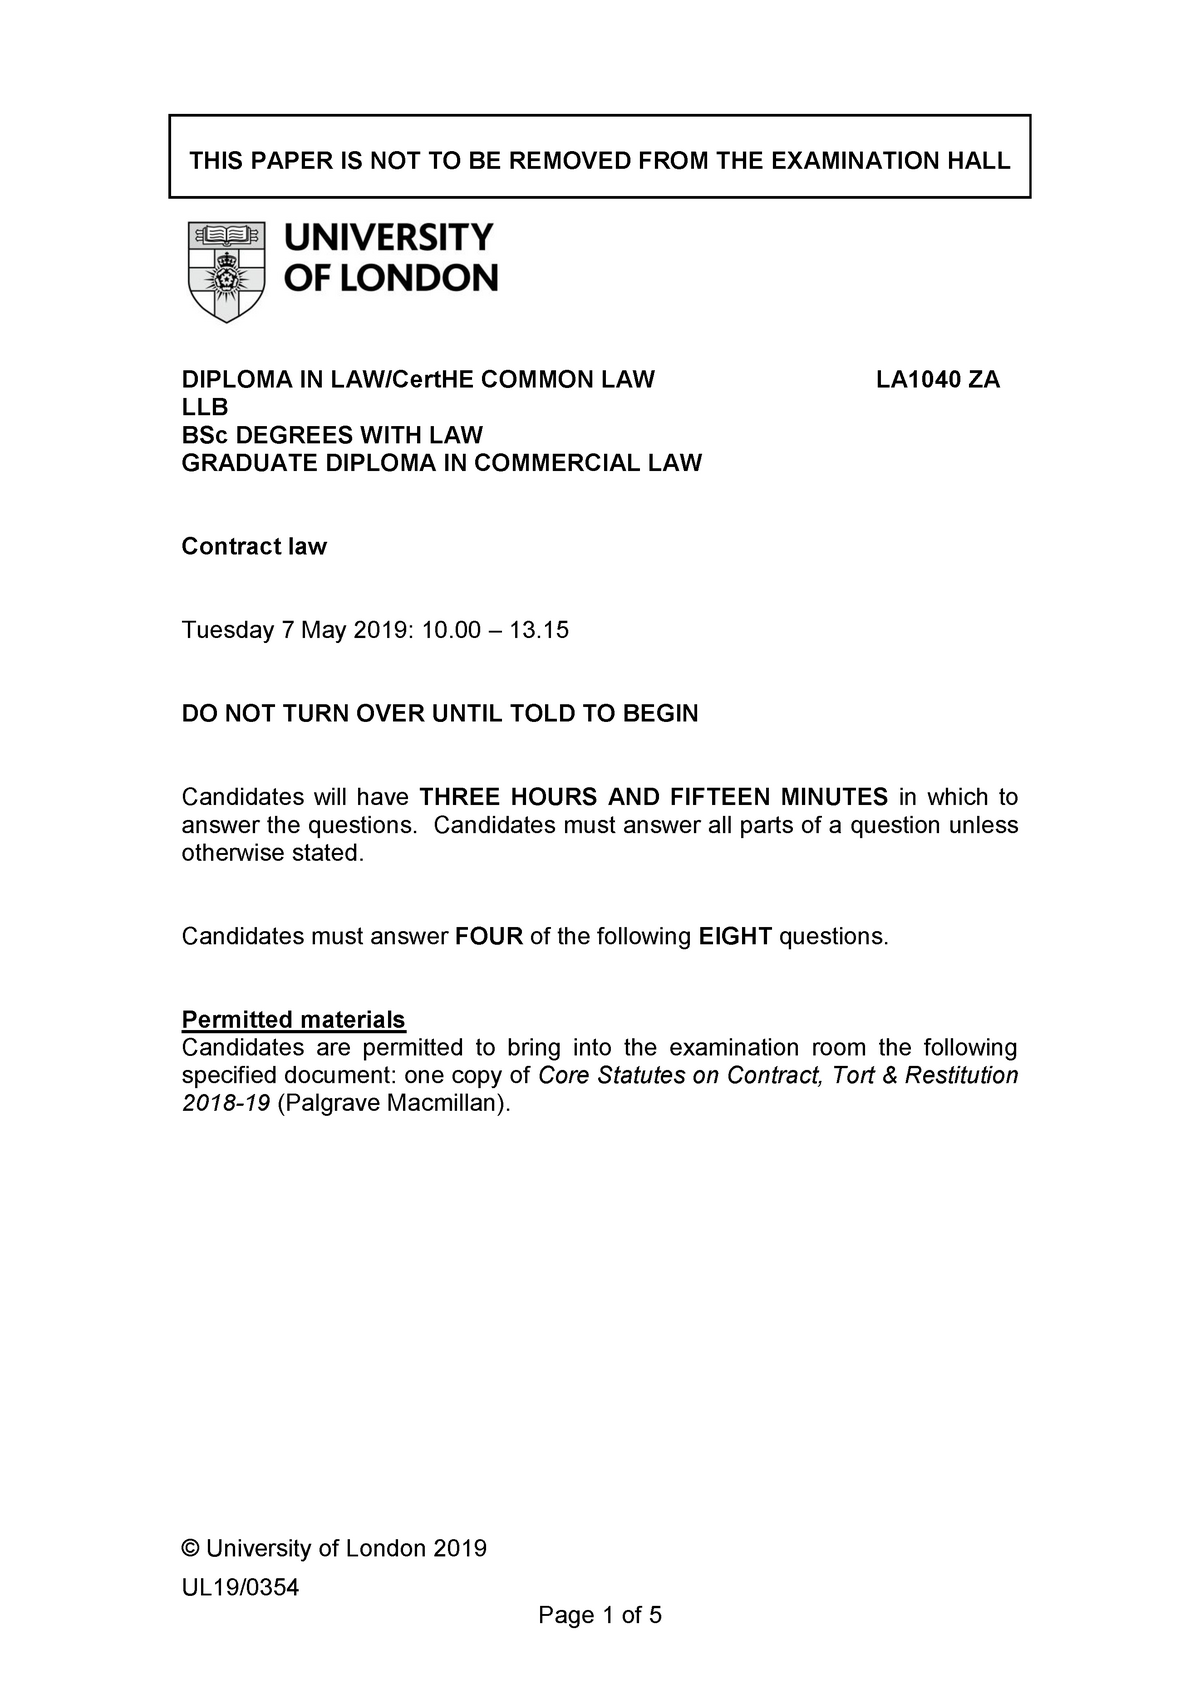 Exam May 2019, questions - Contract law LA1040 - London